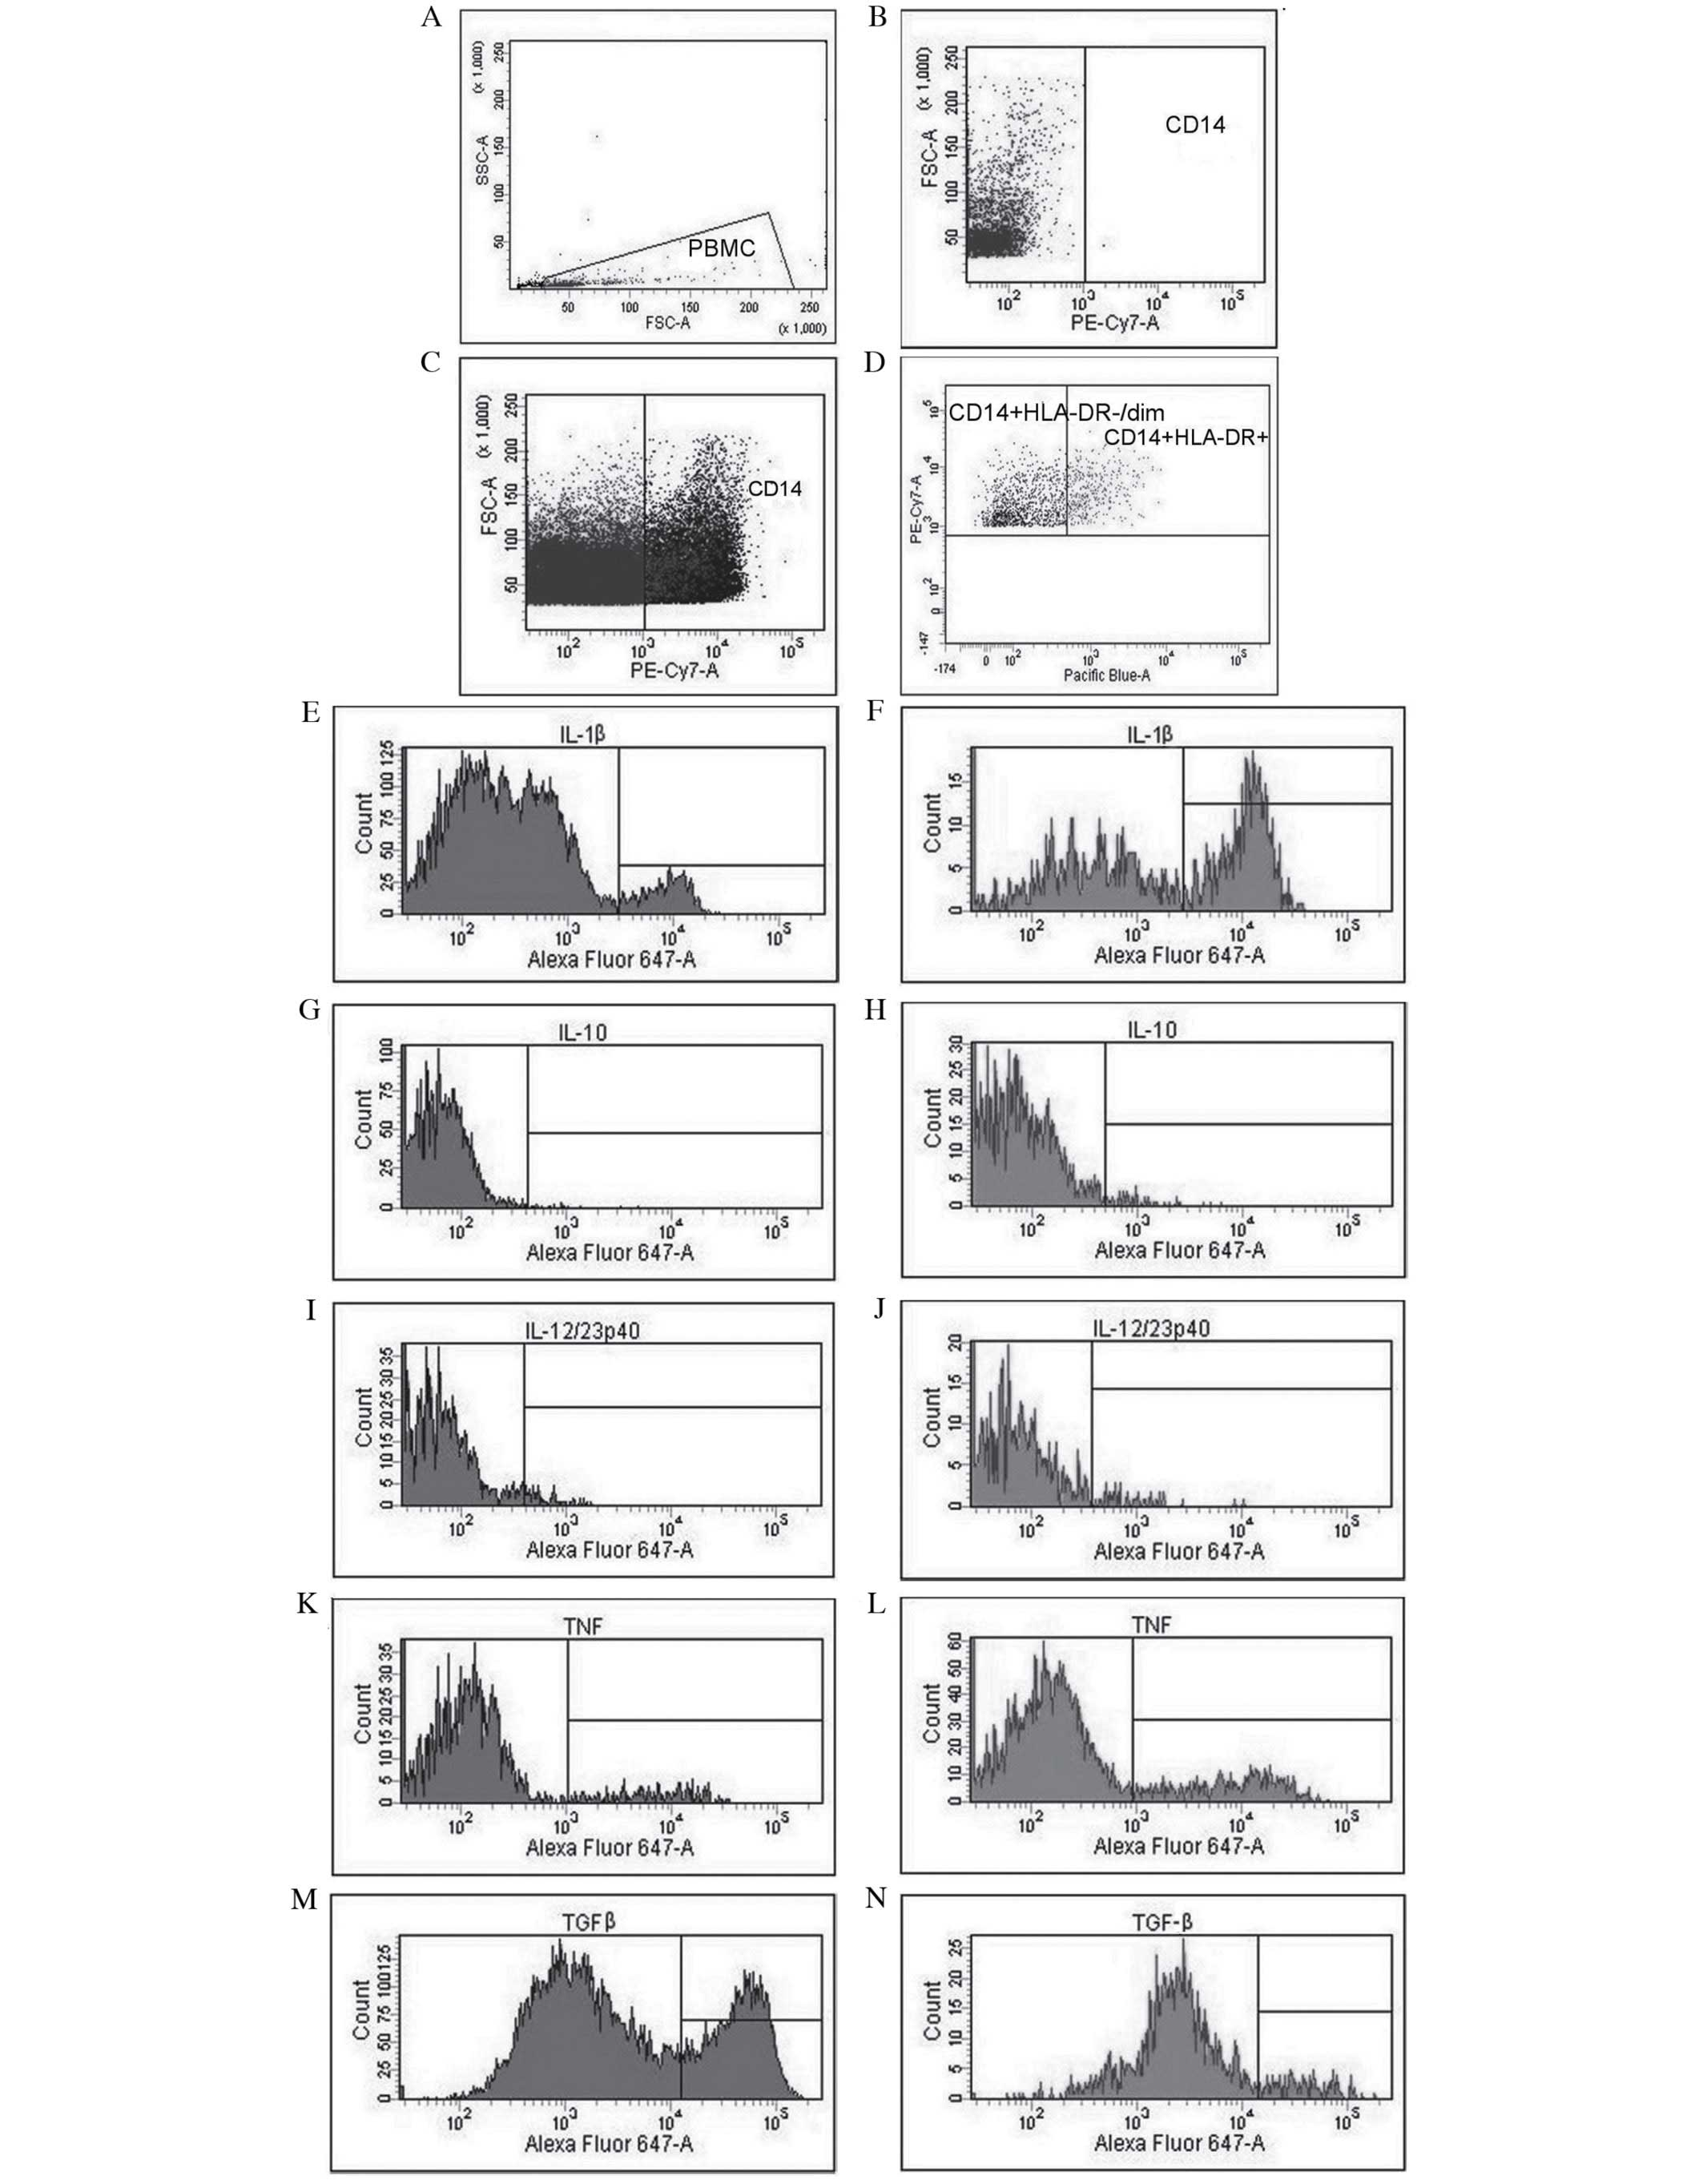 Monocytic Myeloid Derived Suppressor Cells As A Potent Of Selis Balancing Scooter S2 Figure 1 Analysis Cytokine Profiles And Evaluation The Expression Mo Mdscs Monocytes Macrophages In Patients With Non Small Cell Lung Cancer